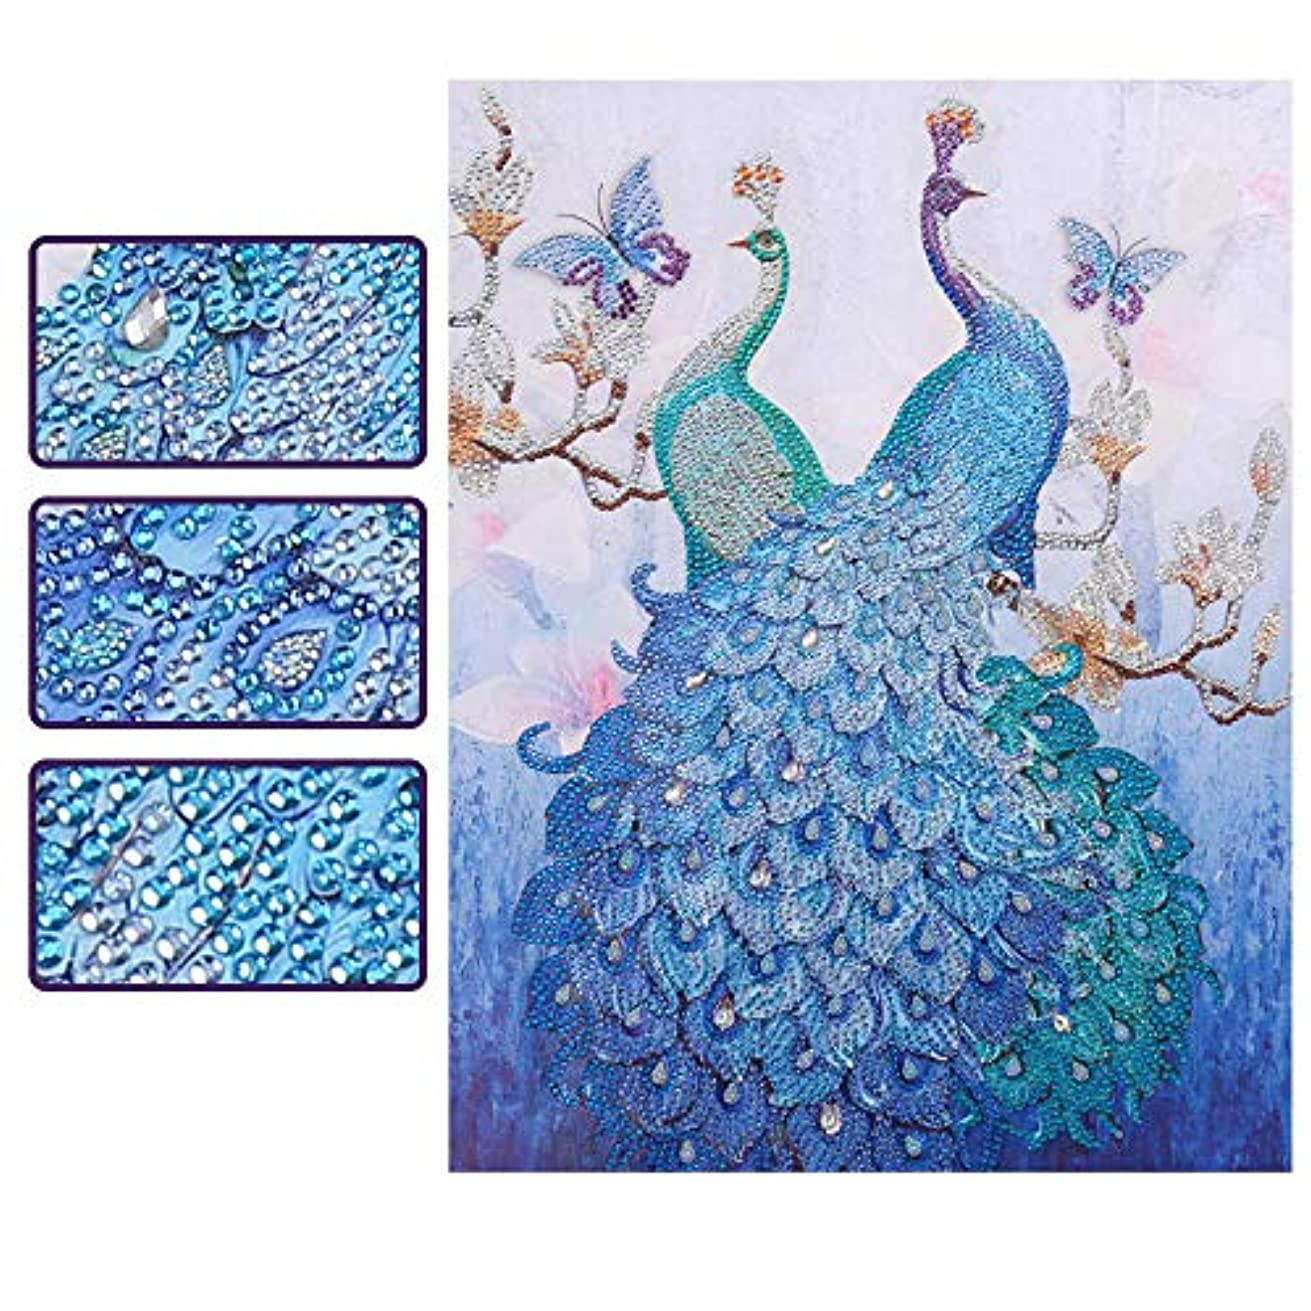 SuperDecor DIY 5D Diamond Painting Kits Special Shaped Rhinestones Blue Peacock Butterfly Pattern Diamond Embroidery Paintings Art by Number Kits for Home Wall Decor 16x20Inch